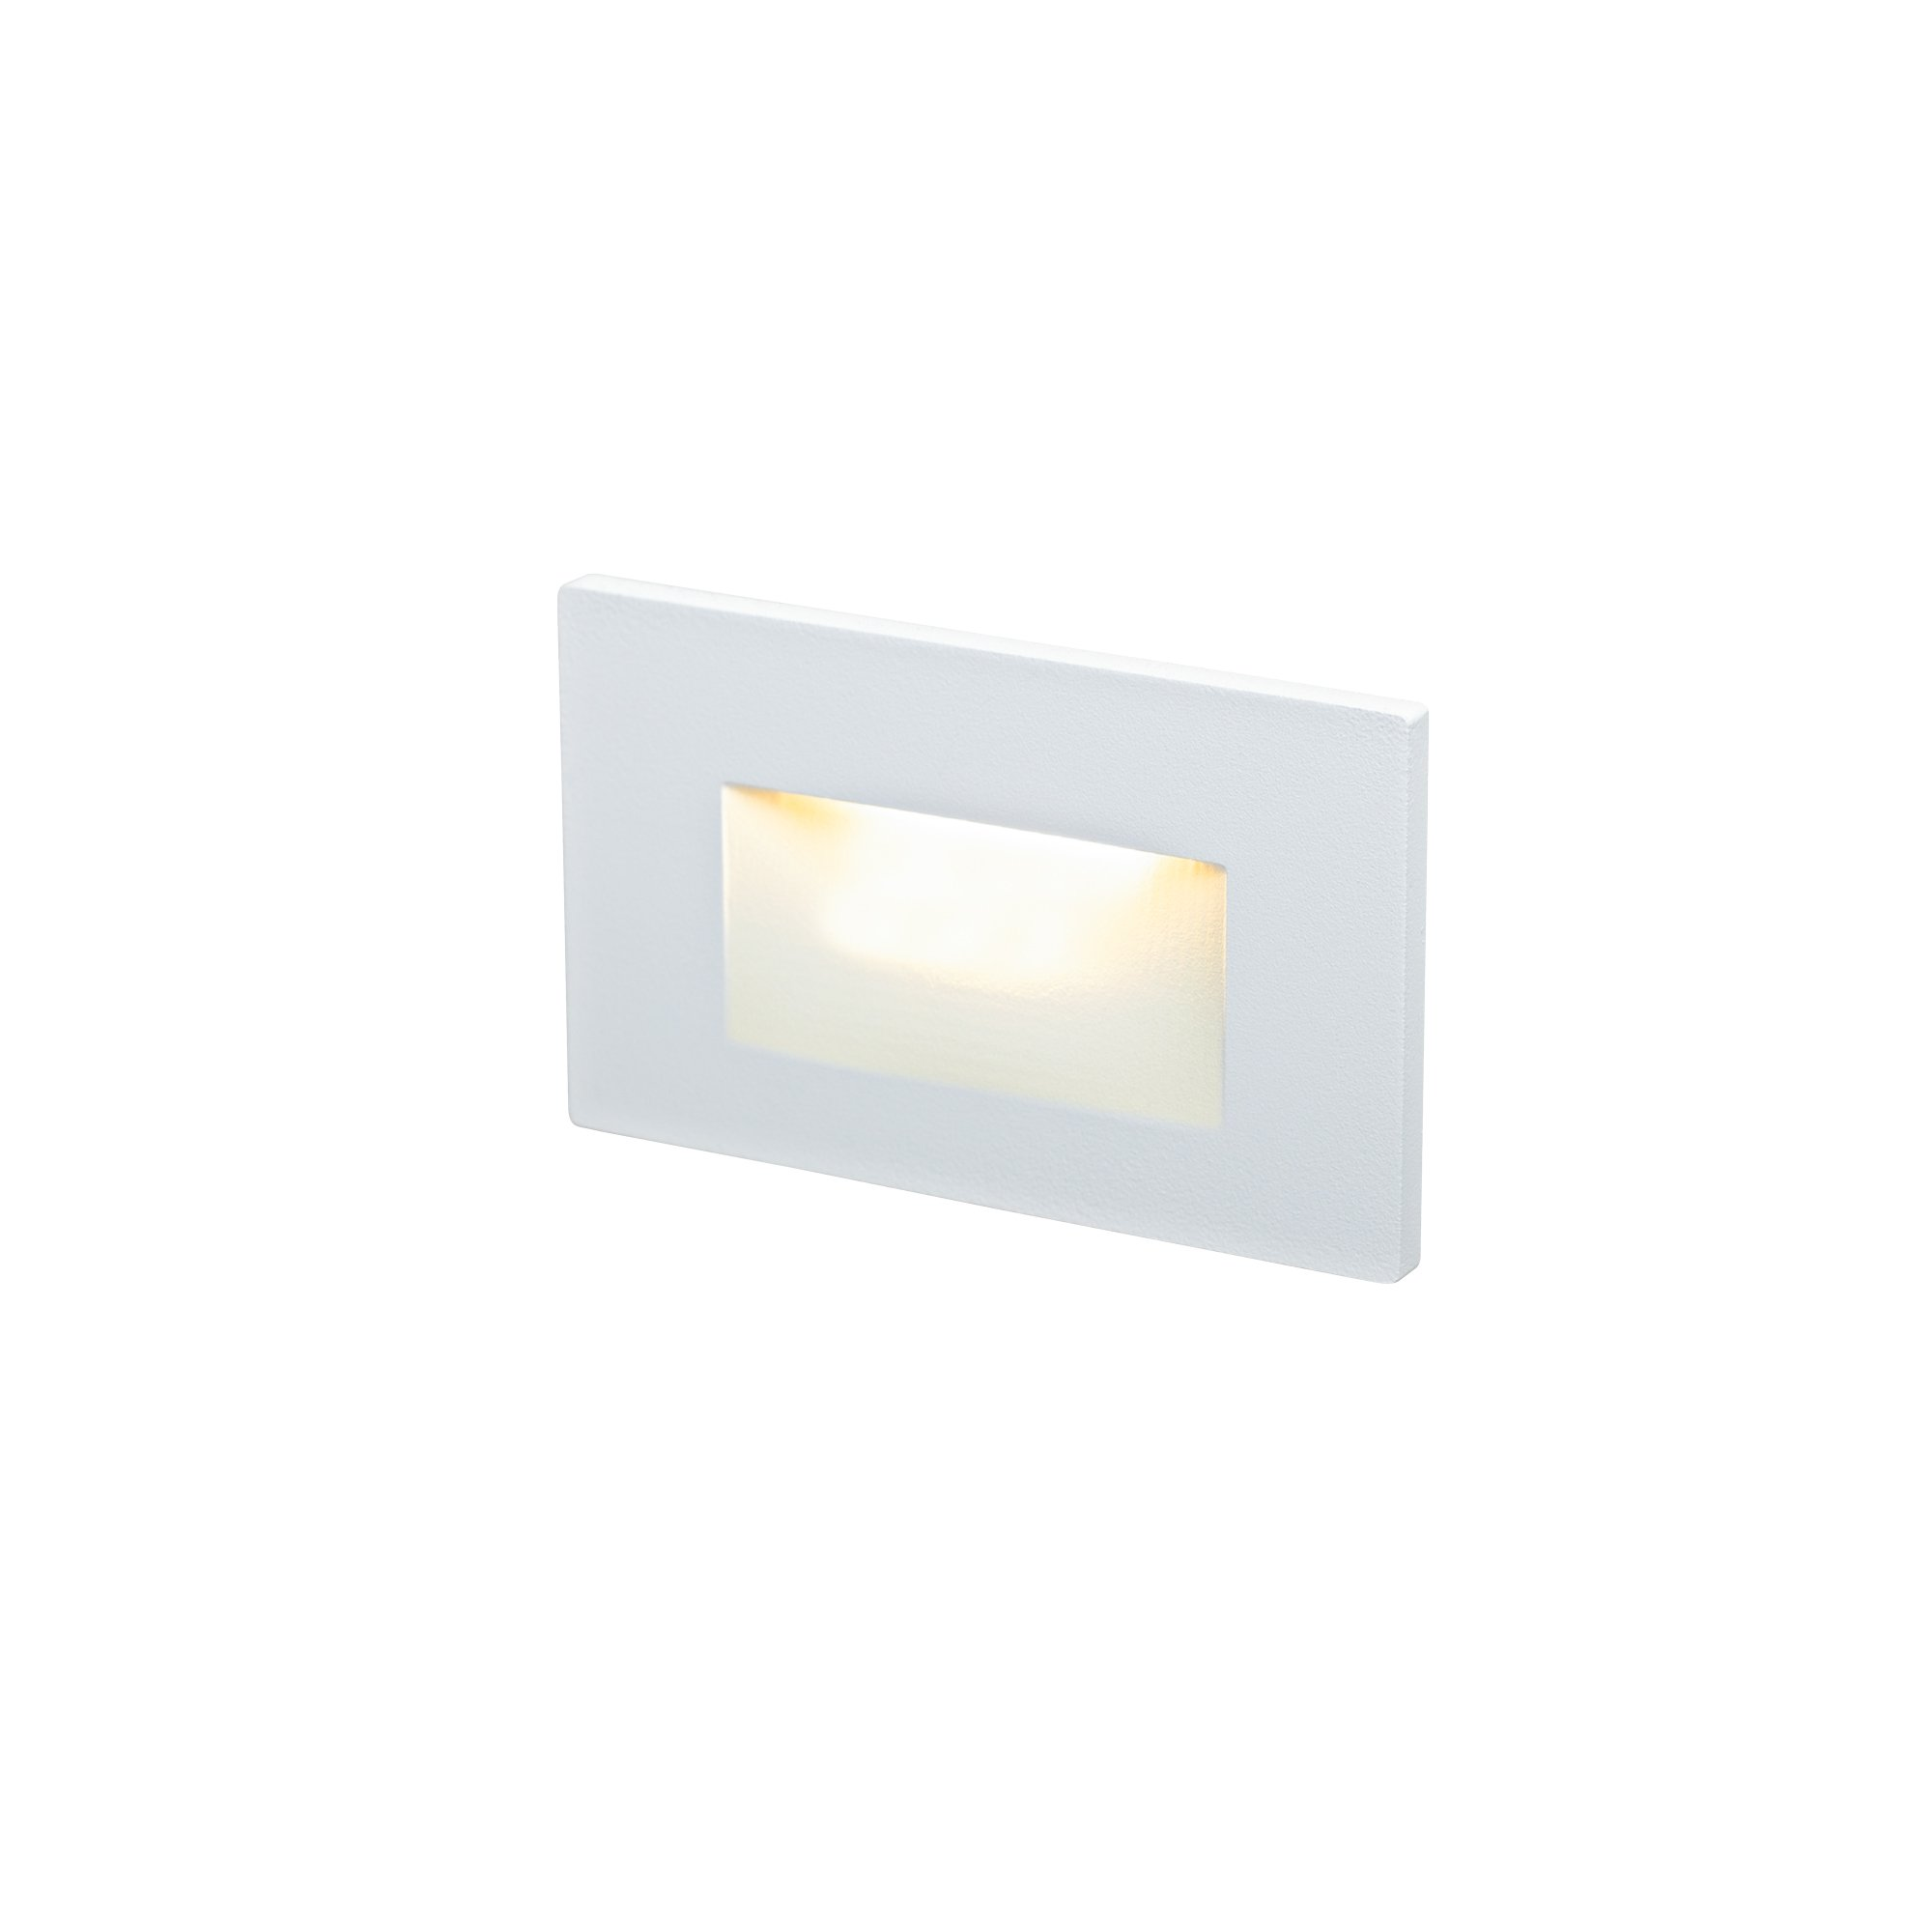 DALS Lighting LEDSTEP005D-WH 4.75'' Recessed Horizontal Indoor/Outdoor LED Step Light, White